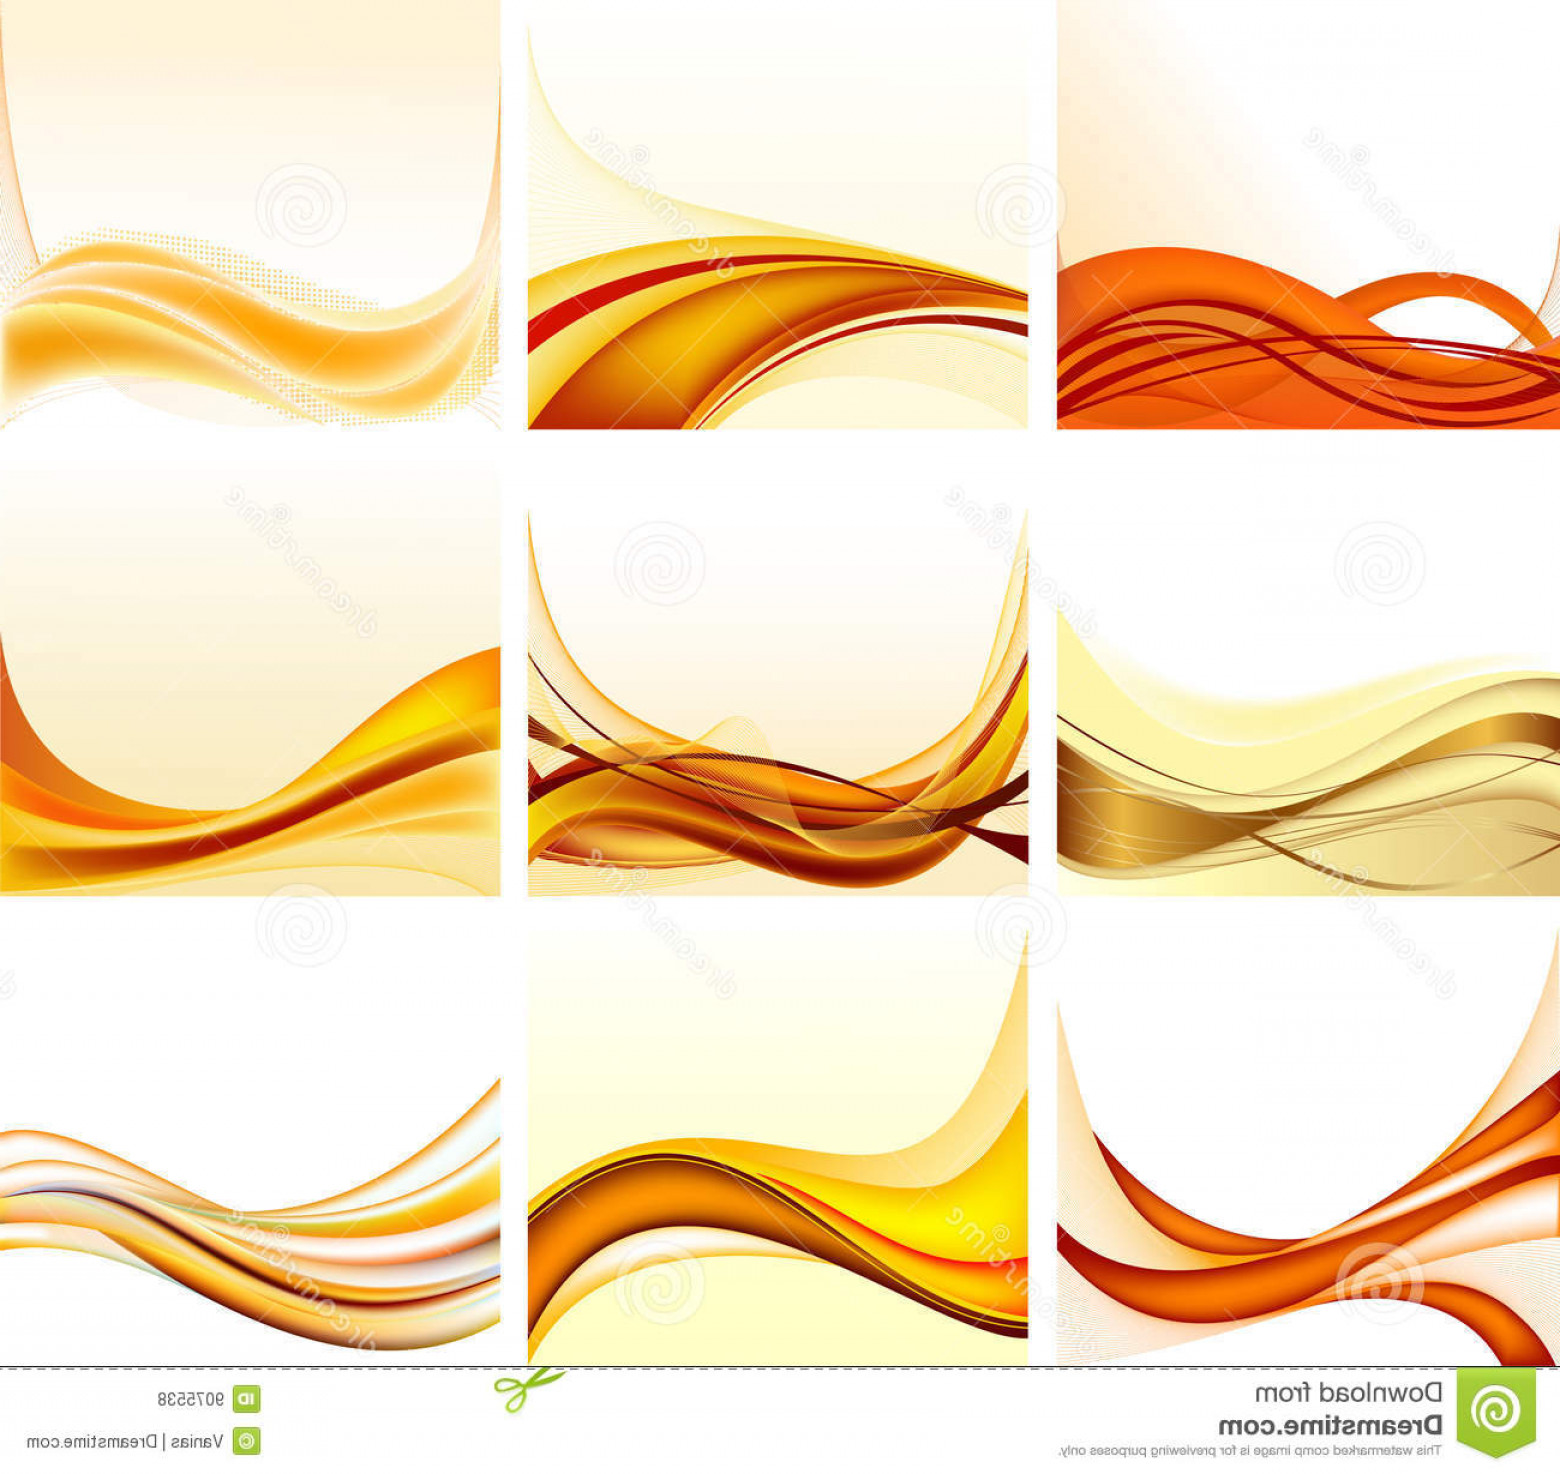 Free Vector Backgrounds Illustrator Free Download: Royalty Free Stock Photos Abstract Background Vector Image